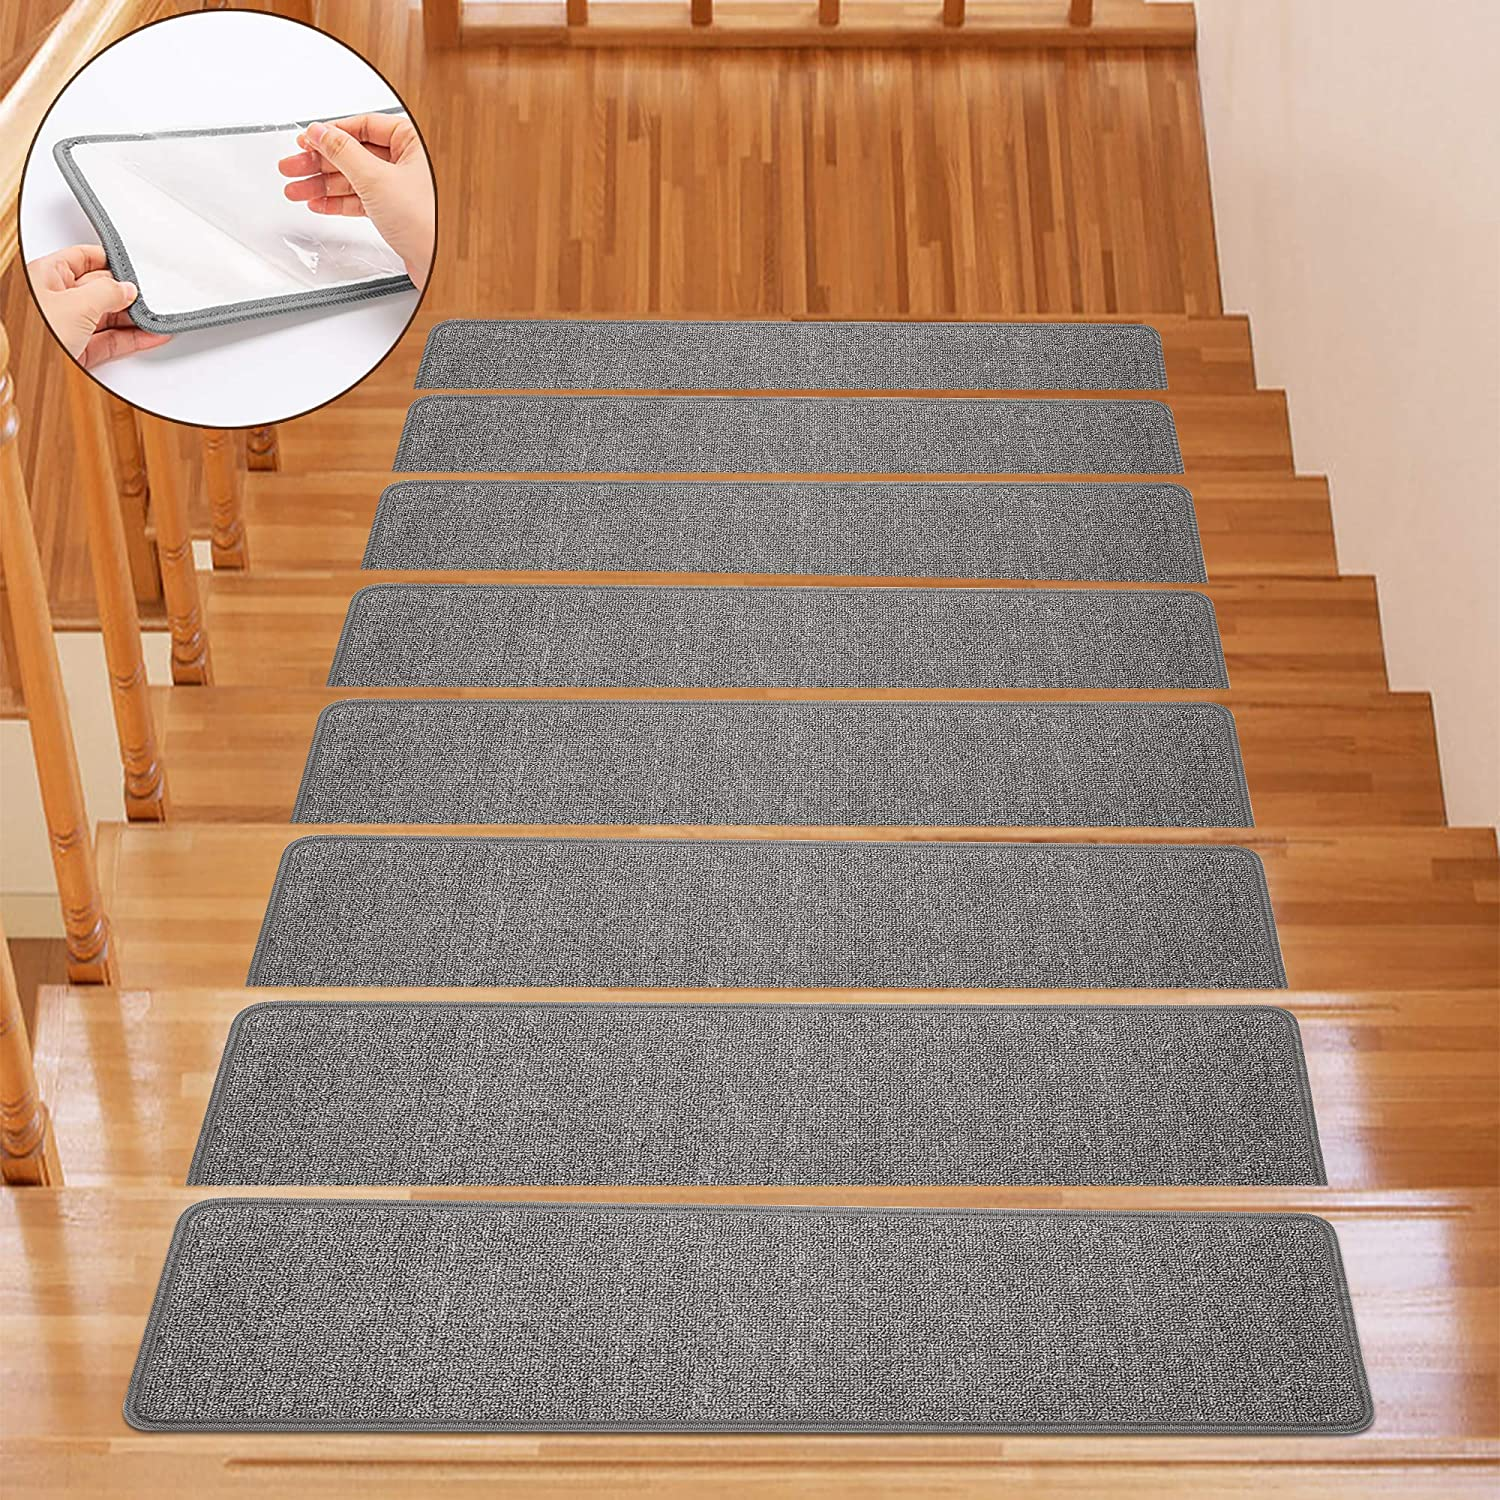 13-Pack, Grey Terry Surface Non-Slip Blanket Stair Stepping Mat 8 x 30 Indoor Comfort Soft Stair Stepping Mat